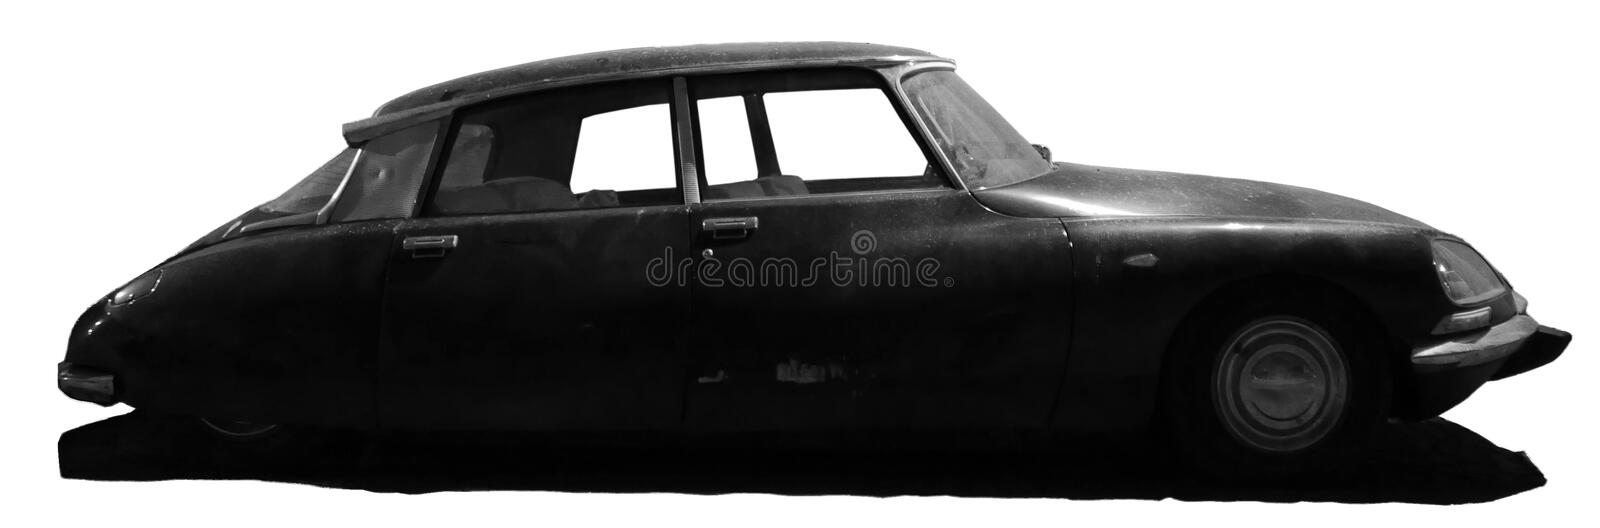 Old citroen ds black and white. The Citroën DS was manufactured and marketed by the French company Citroën from 1955 to 1975. Industrial designer Flaminio stock images